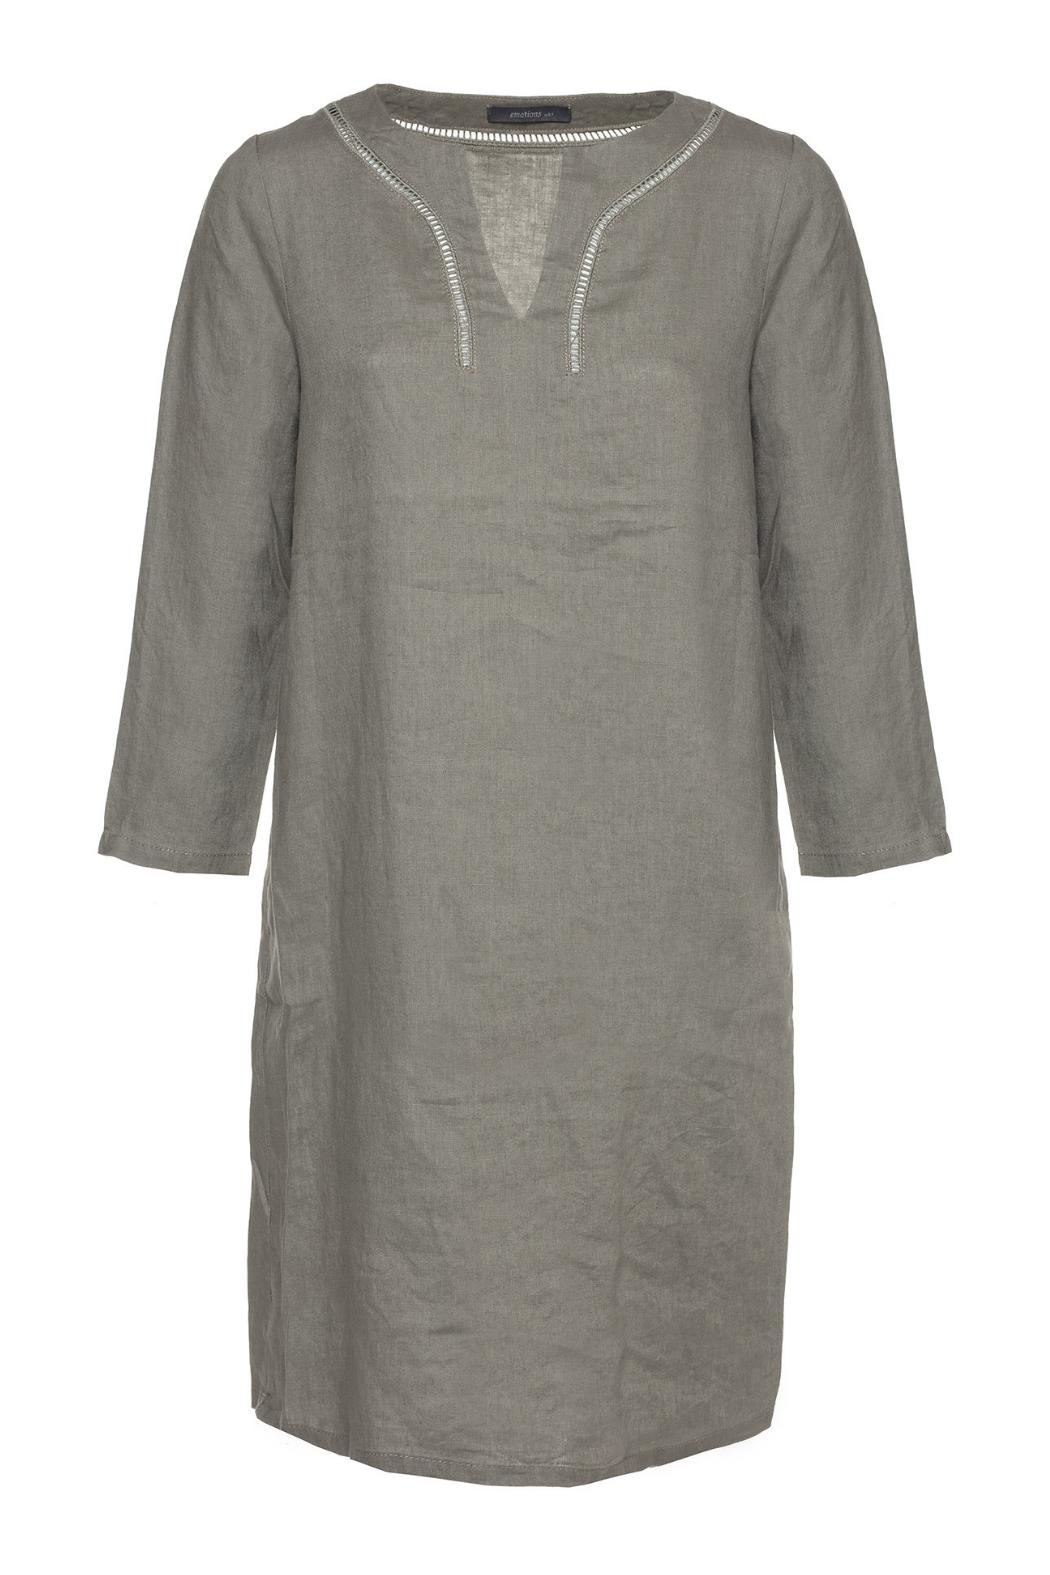 Emotions Linen Dress - Main Image